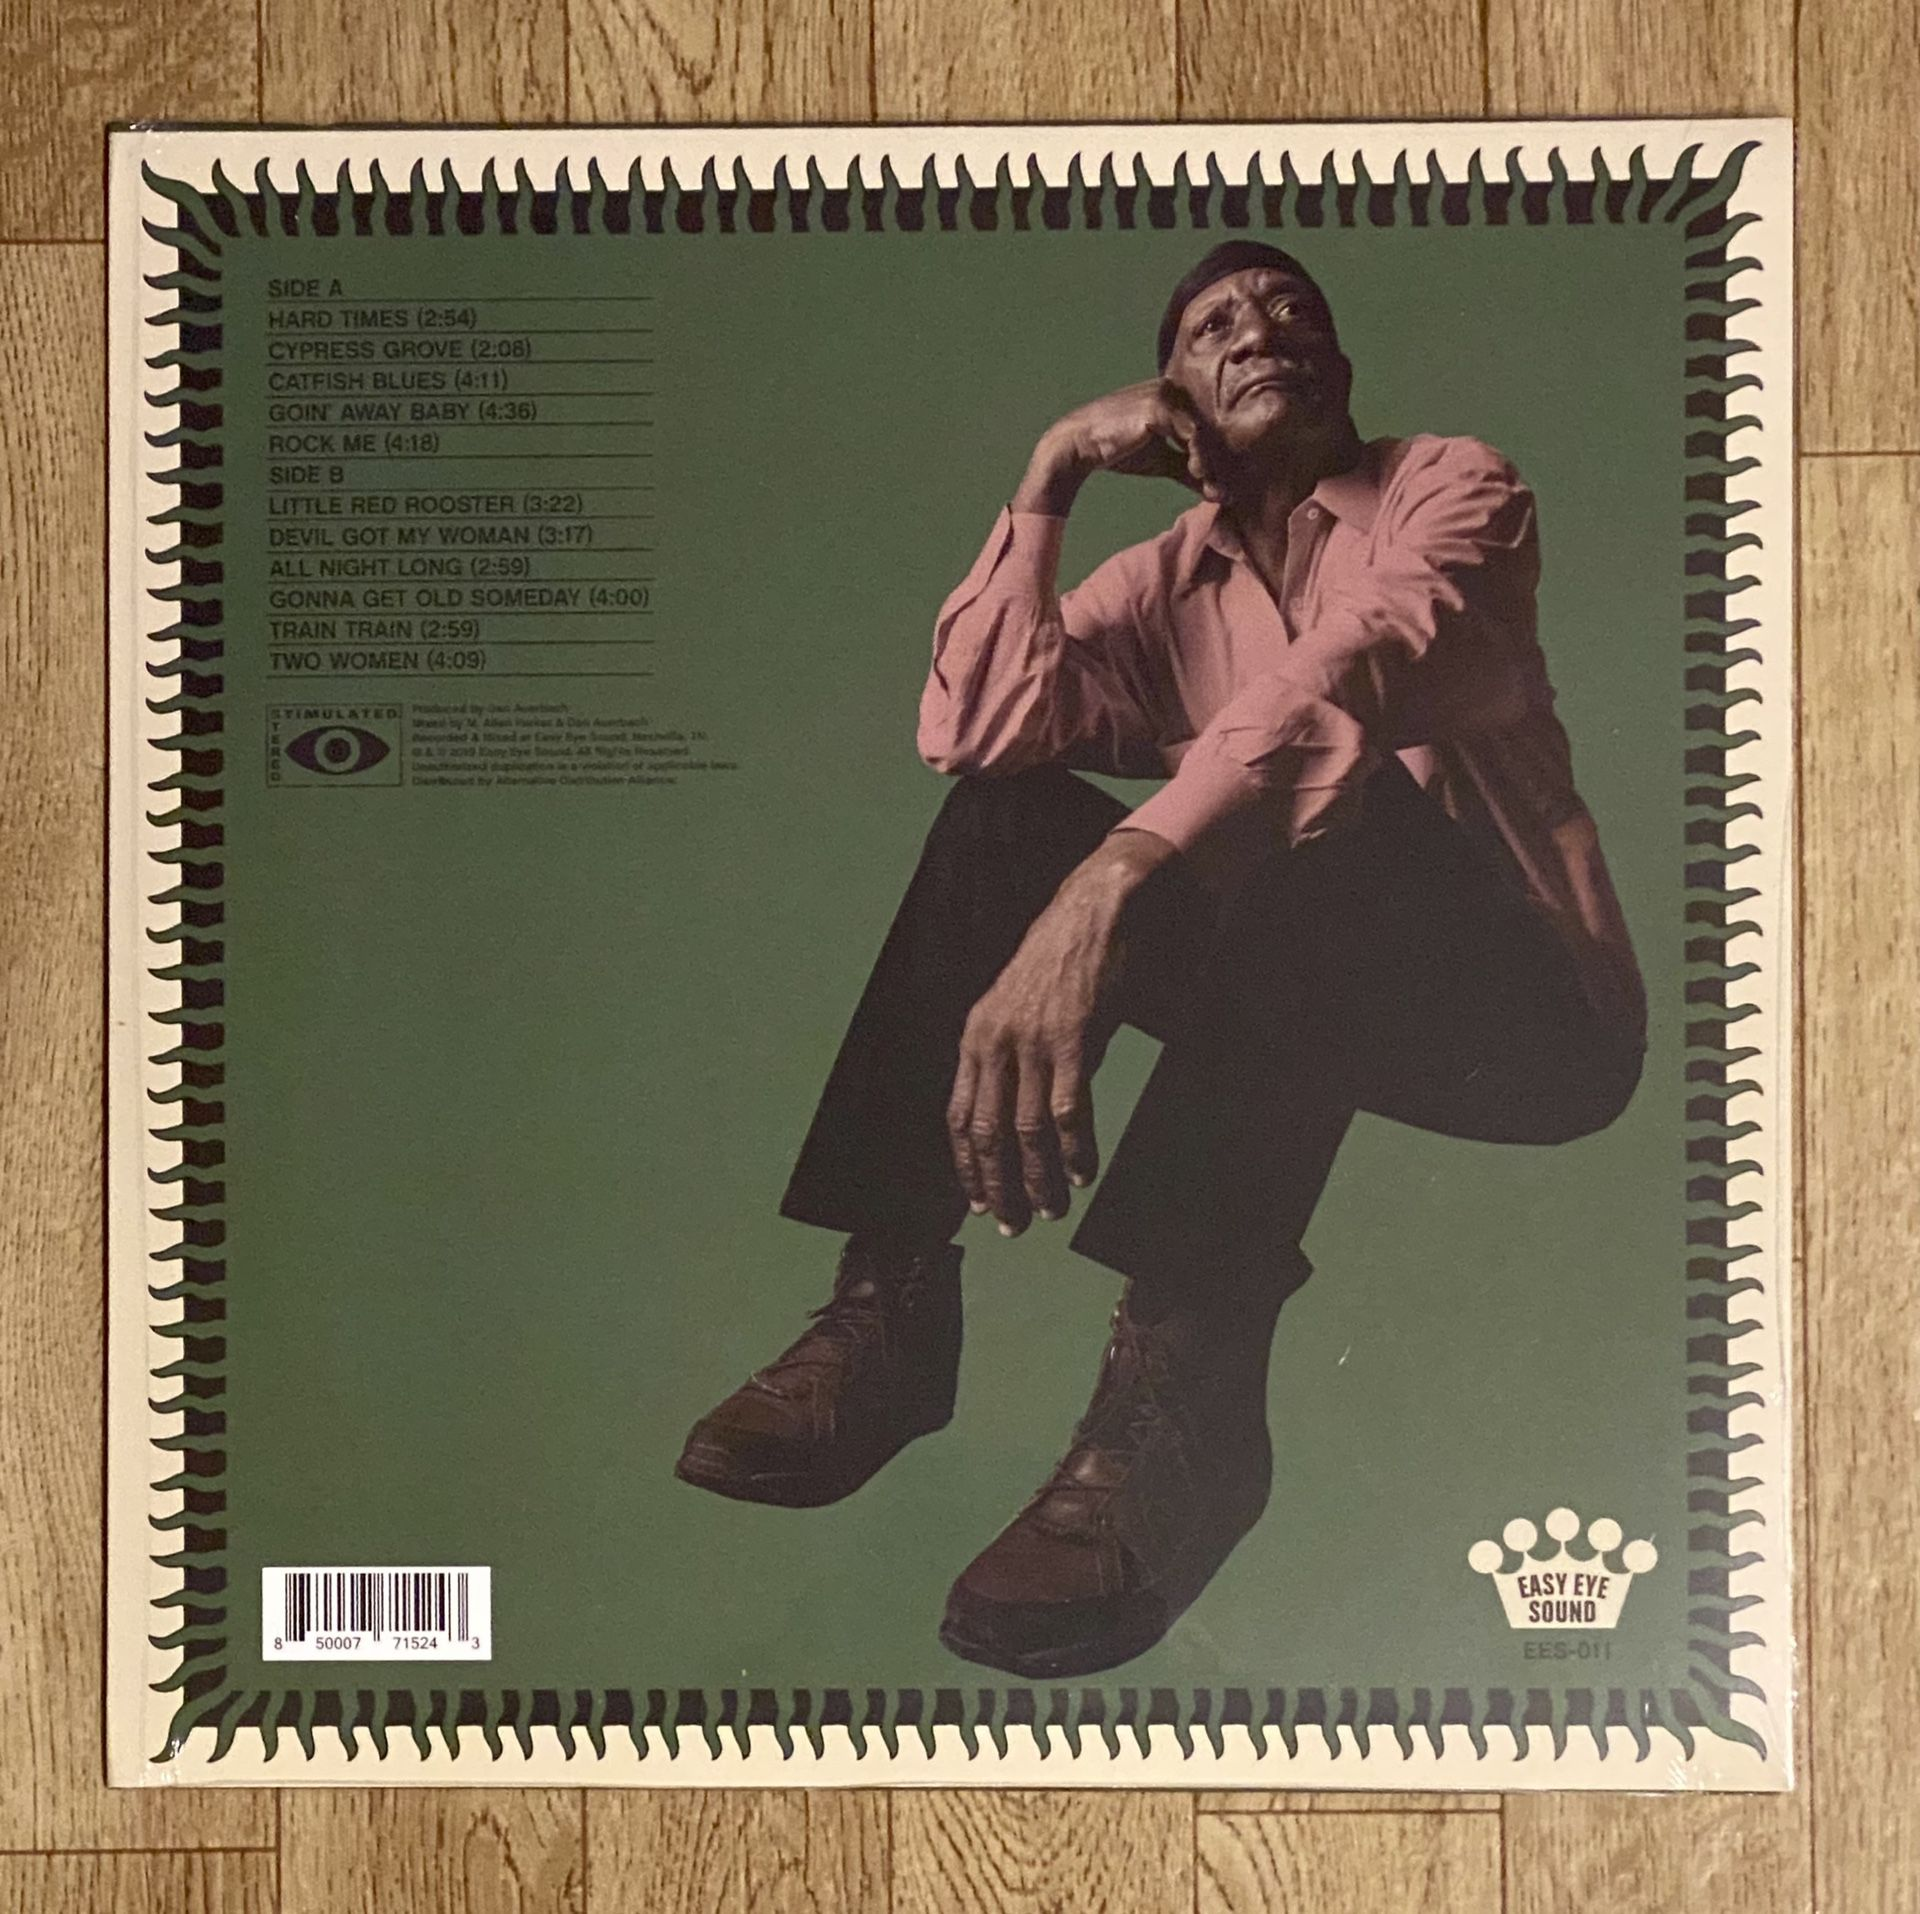 Jimmy Duck Holmes Vinyl Record - Please Observe All Pictures - New Sealed